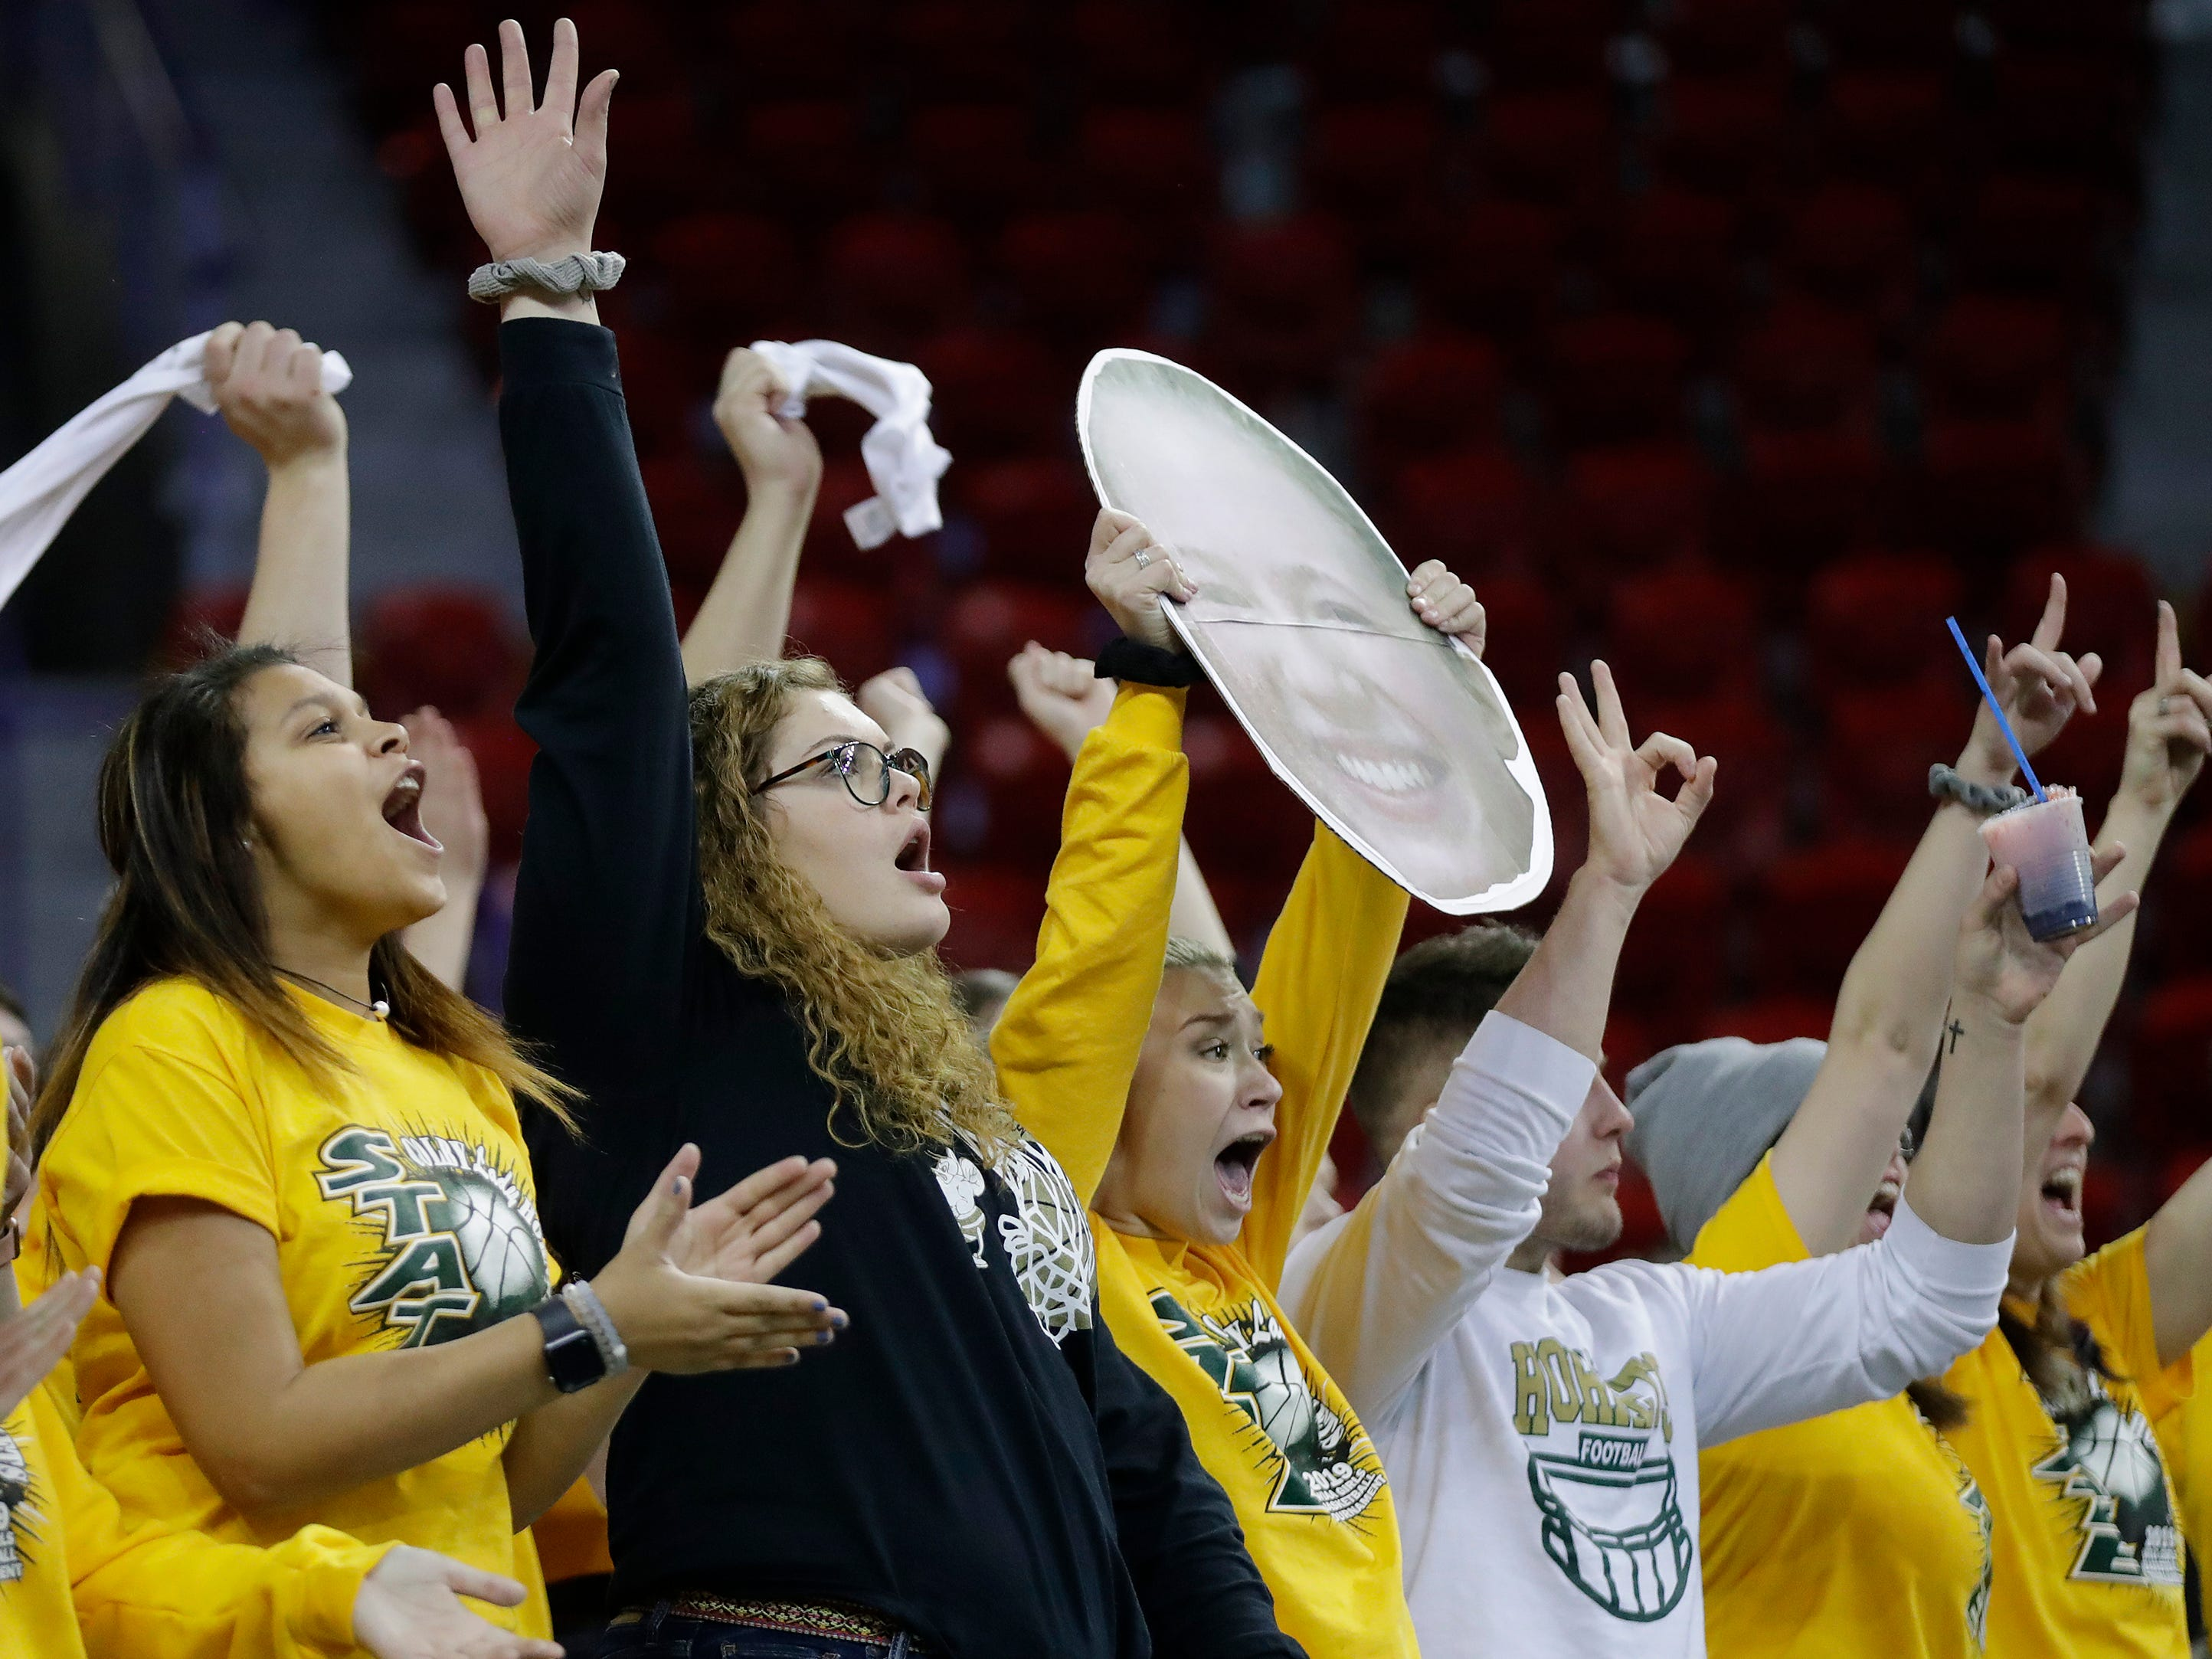 Colby fans cheer after a three-point basket against Melrose-Mindoro a Division 3 semifinal at the WIAA state girls basketball tournament at the Resch Center on Thursday, March 7, 2019, in Ashwaubenon, Wis.